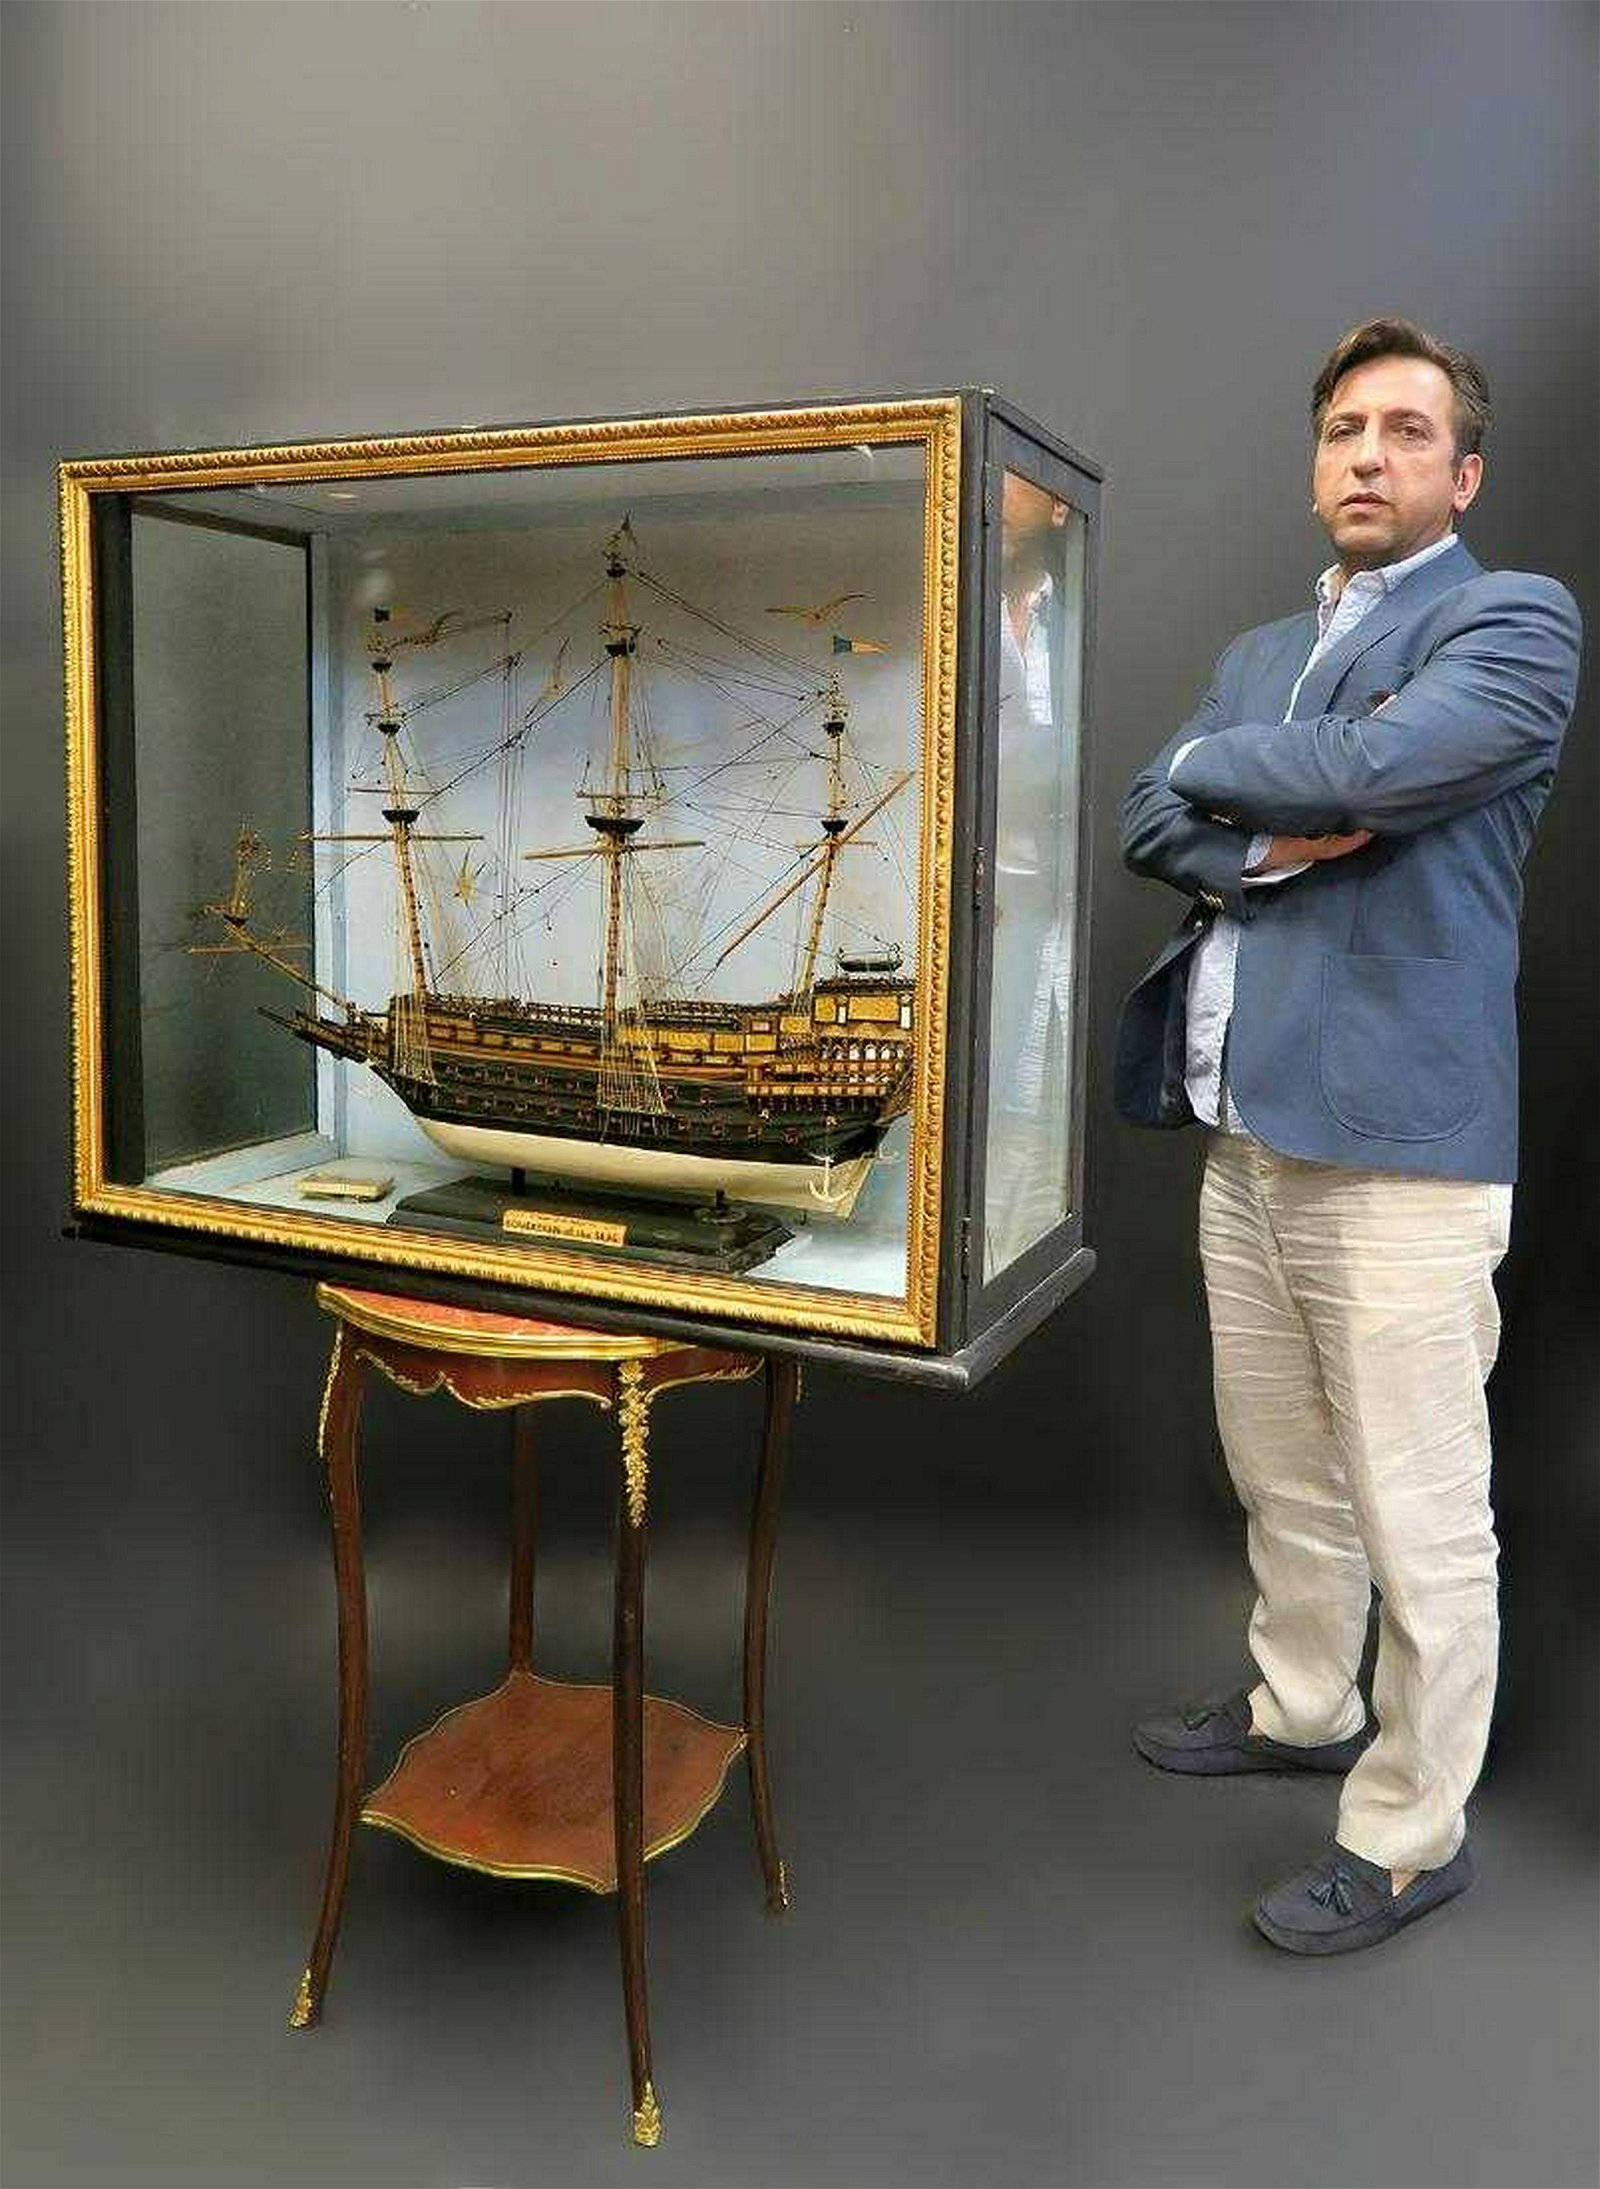 Large, Detailed Hand Made Model of a British Ship